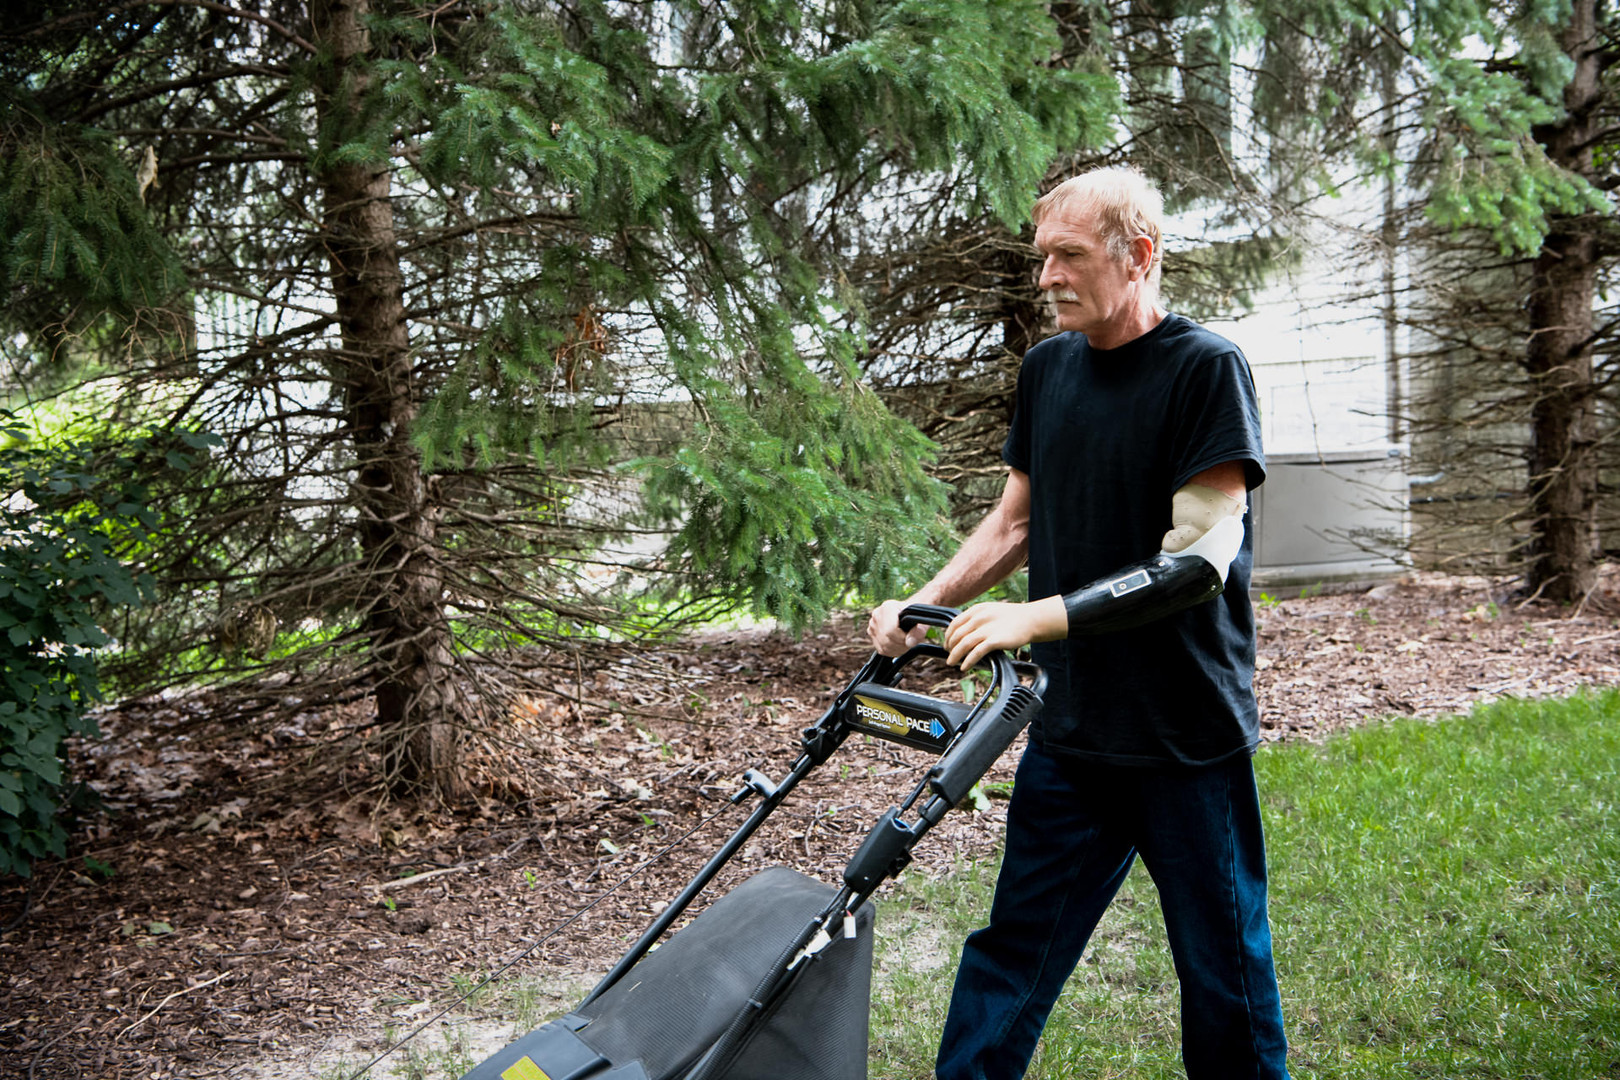 Steve mowing the lawn